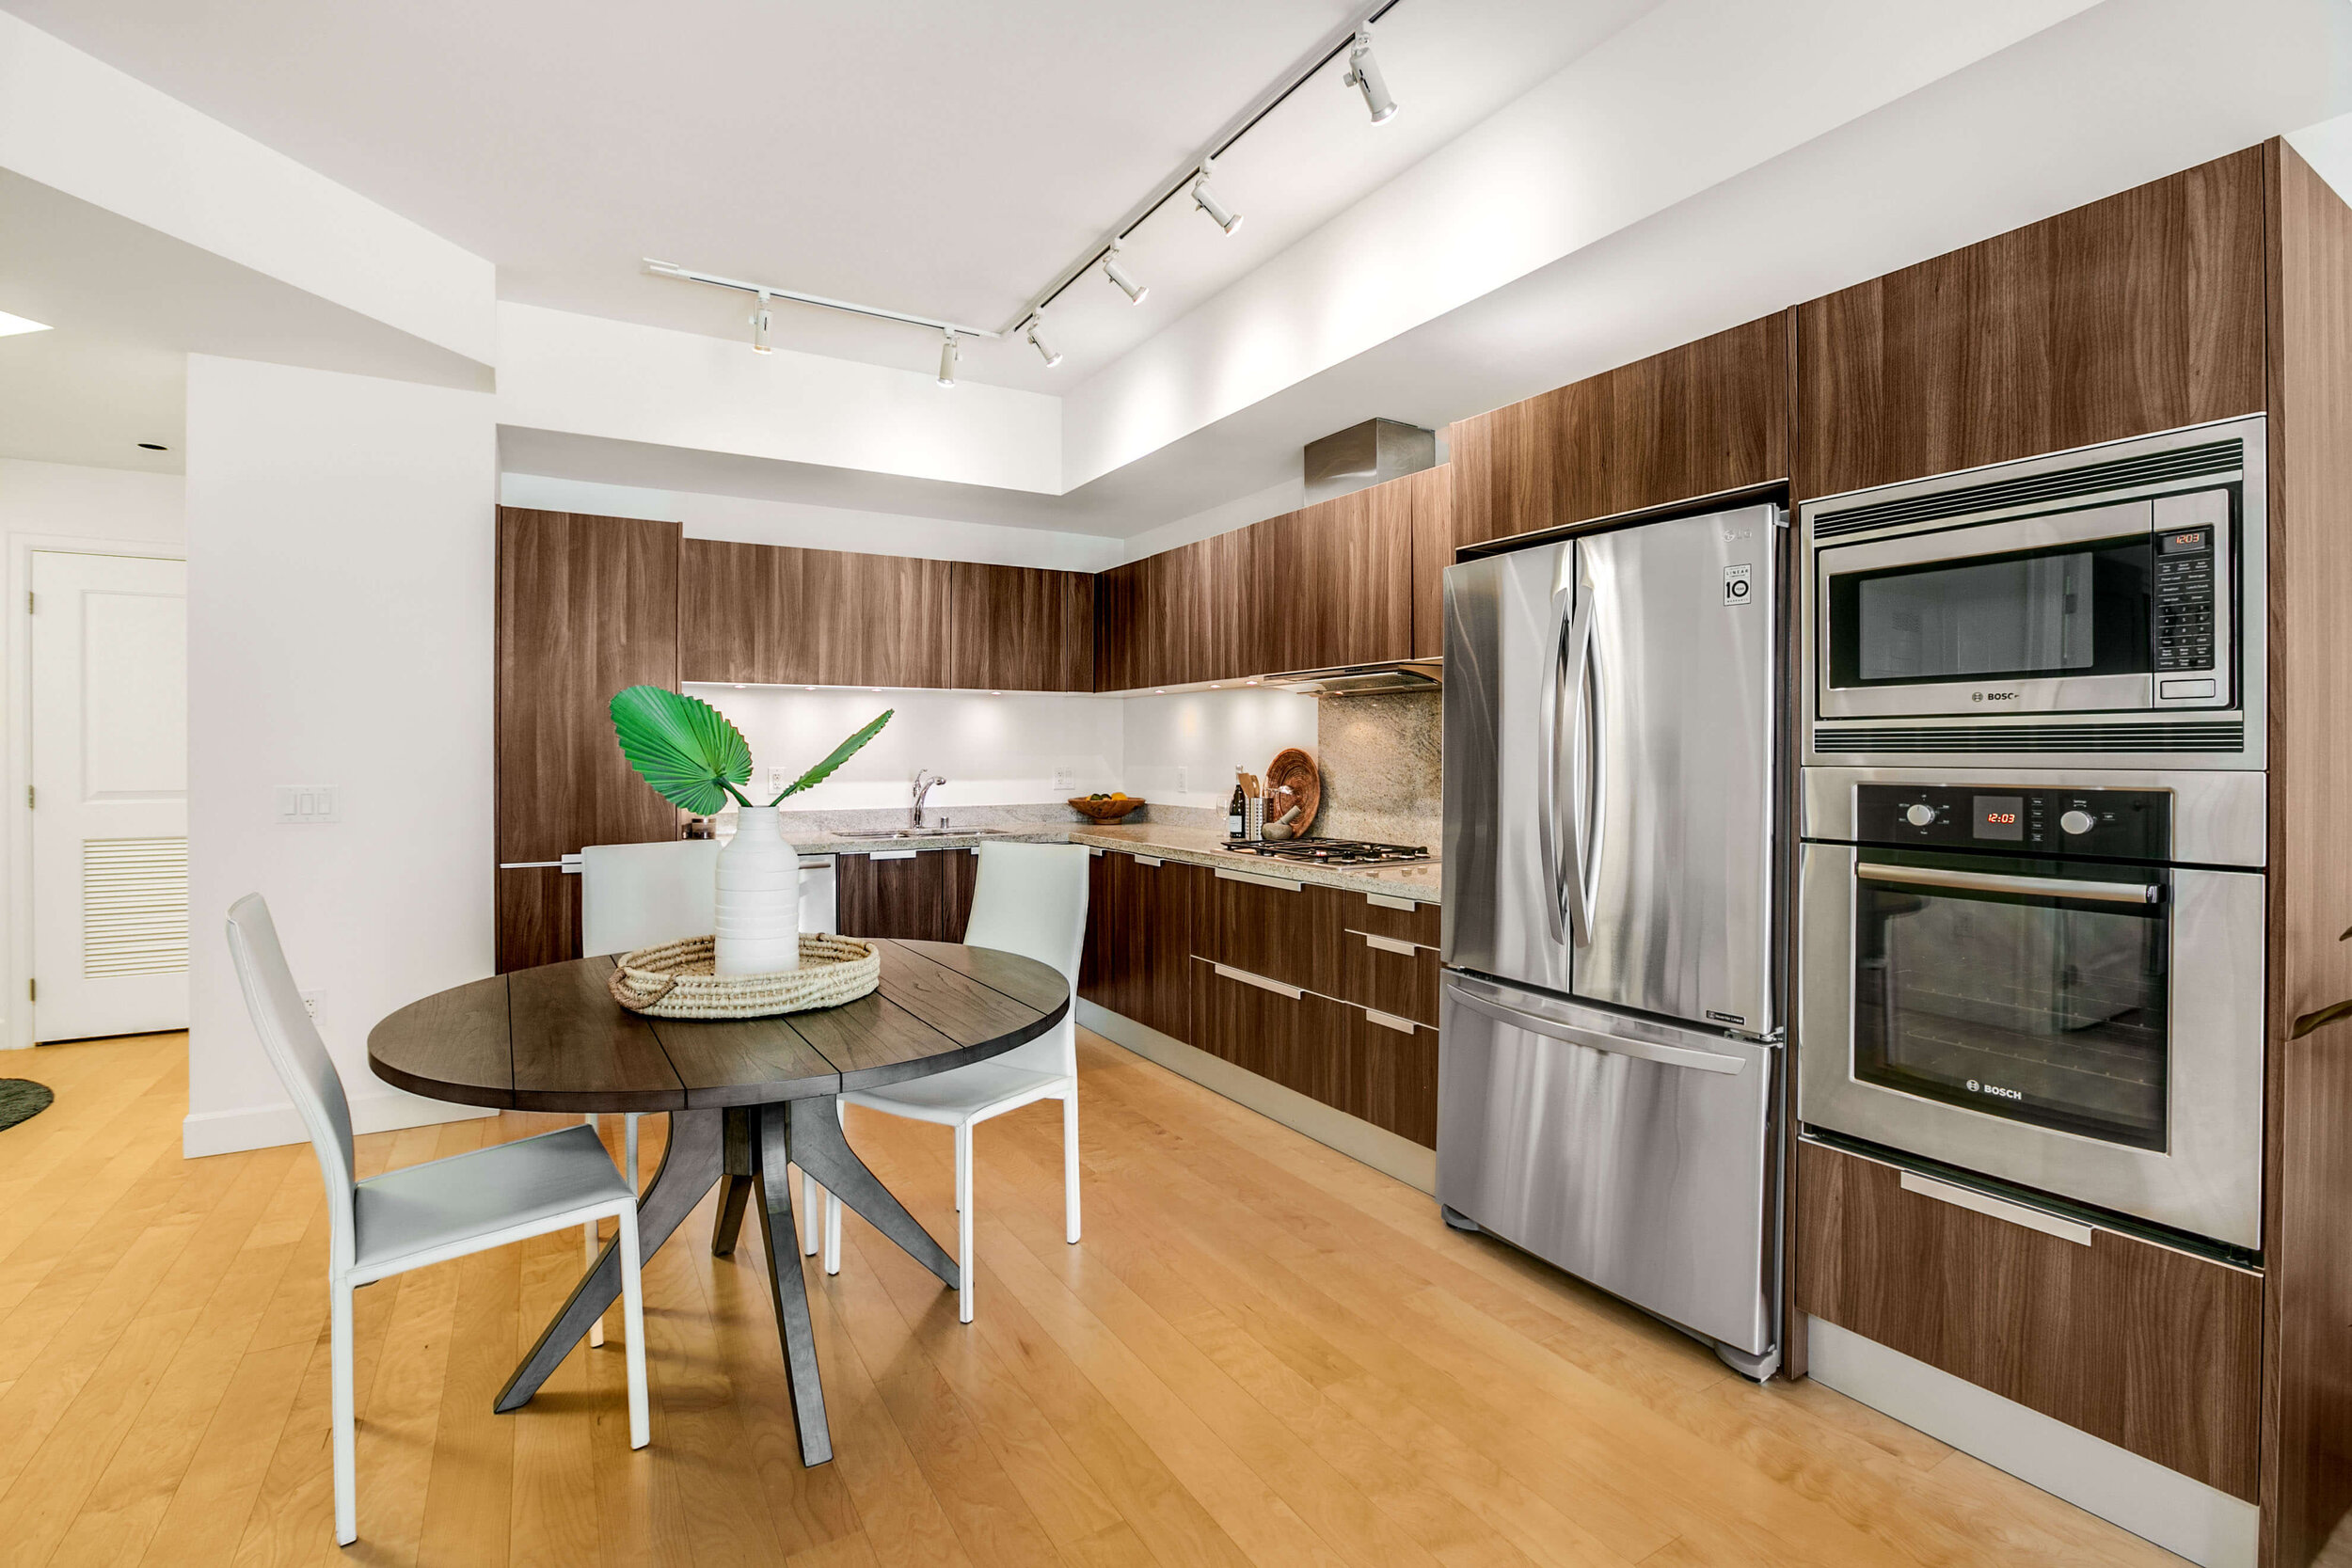 luxury-high-rise-condo-fore-sale-in-downtown-seattle.jpg